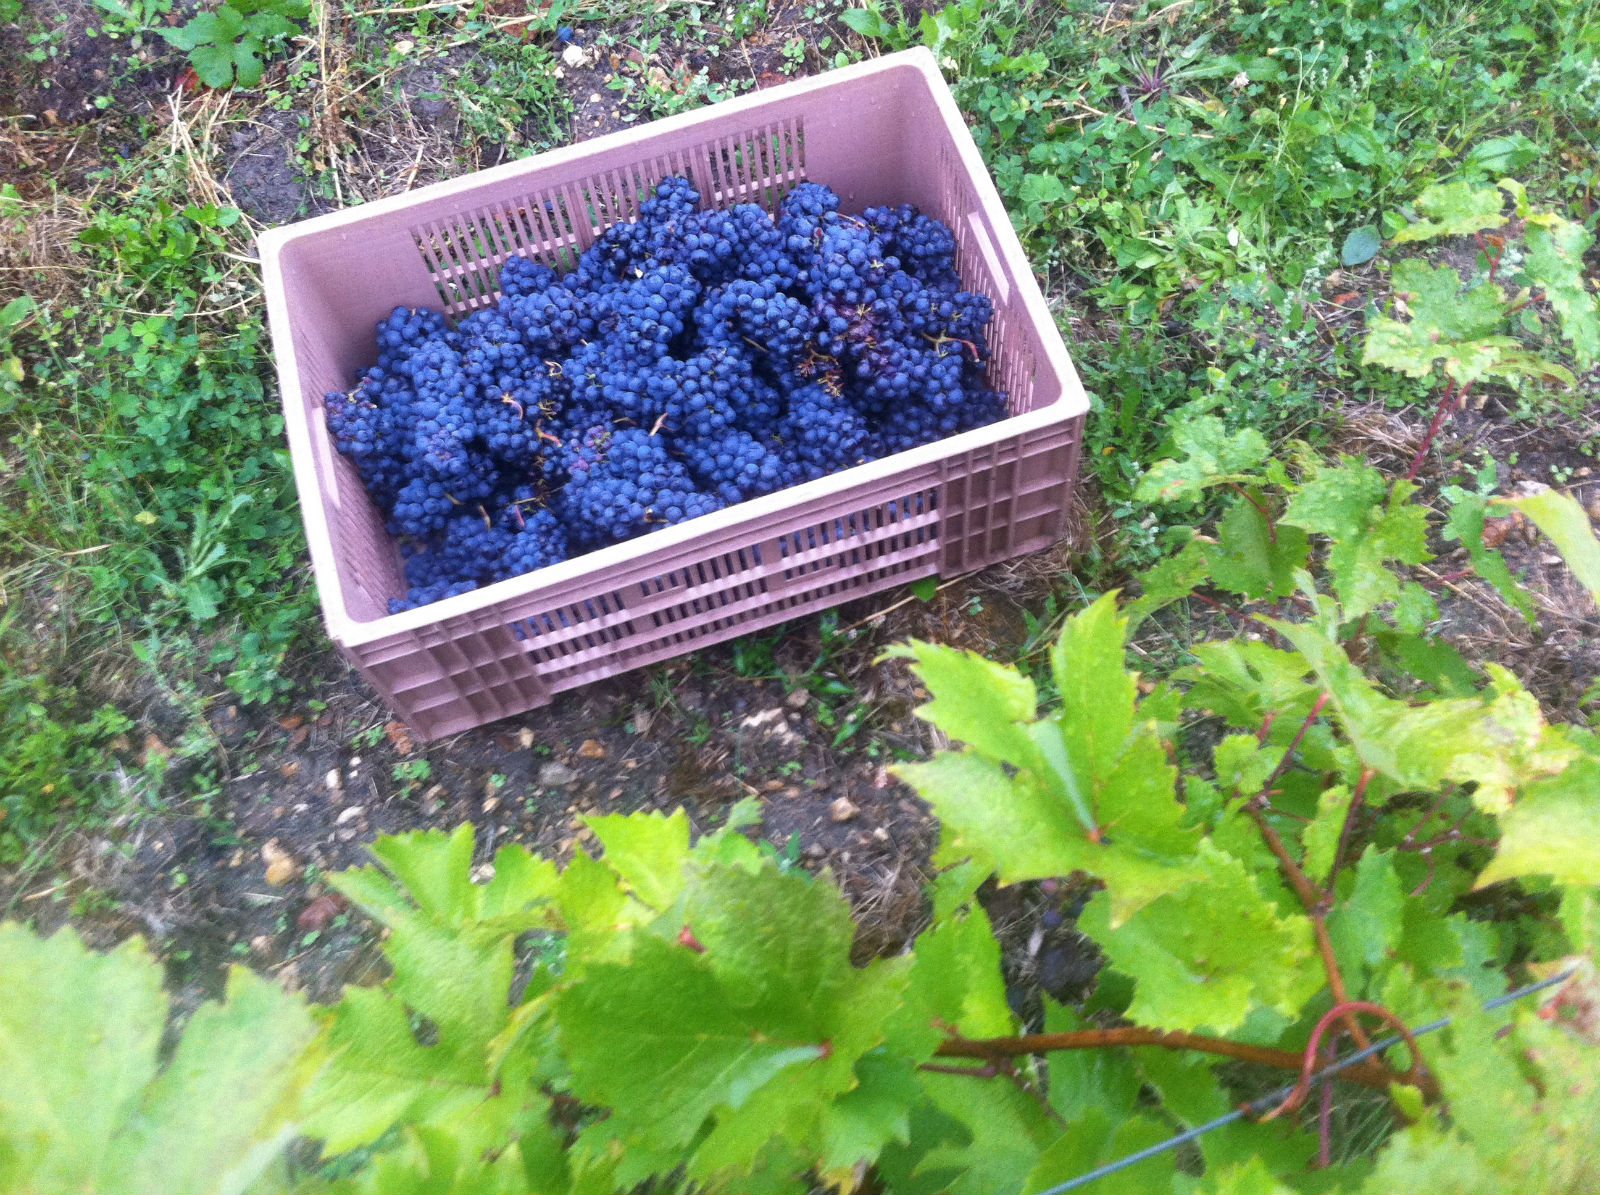 HiP Paris blog. Experiencing the wine harvest in France.